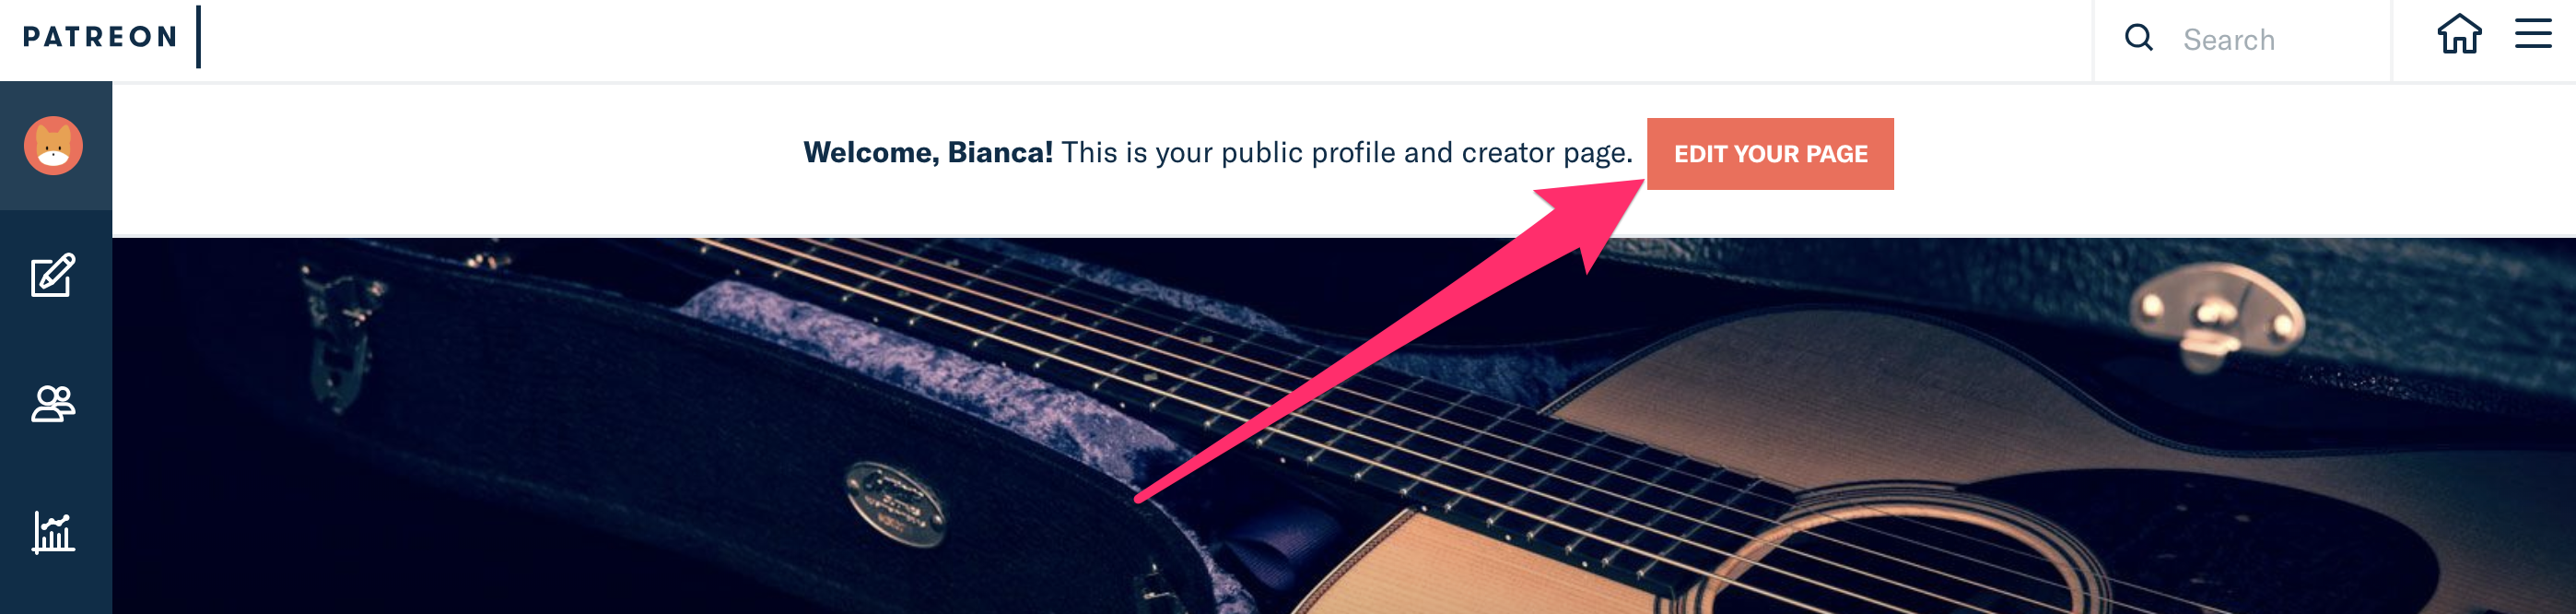 Bianca_is_creating_Music___Patreon.png